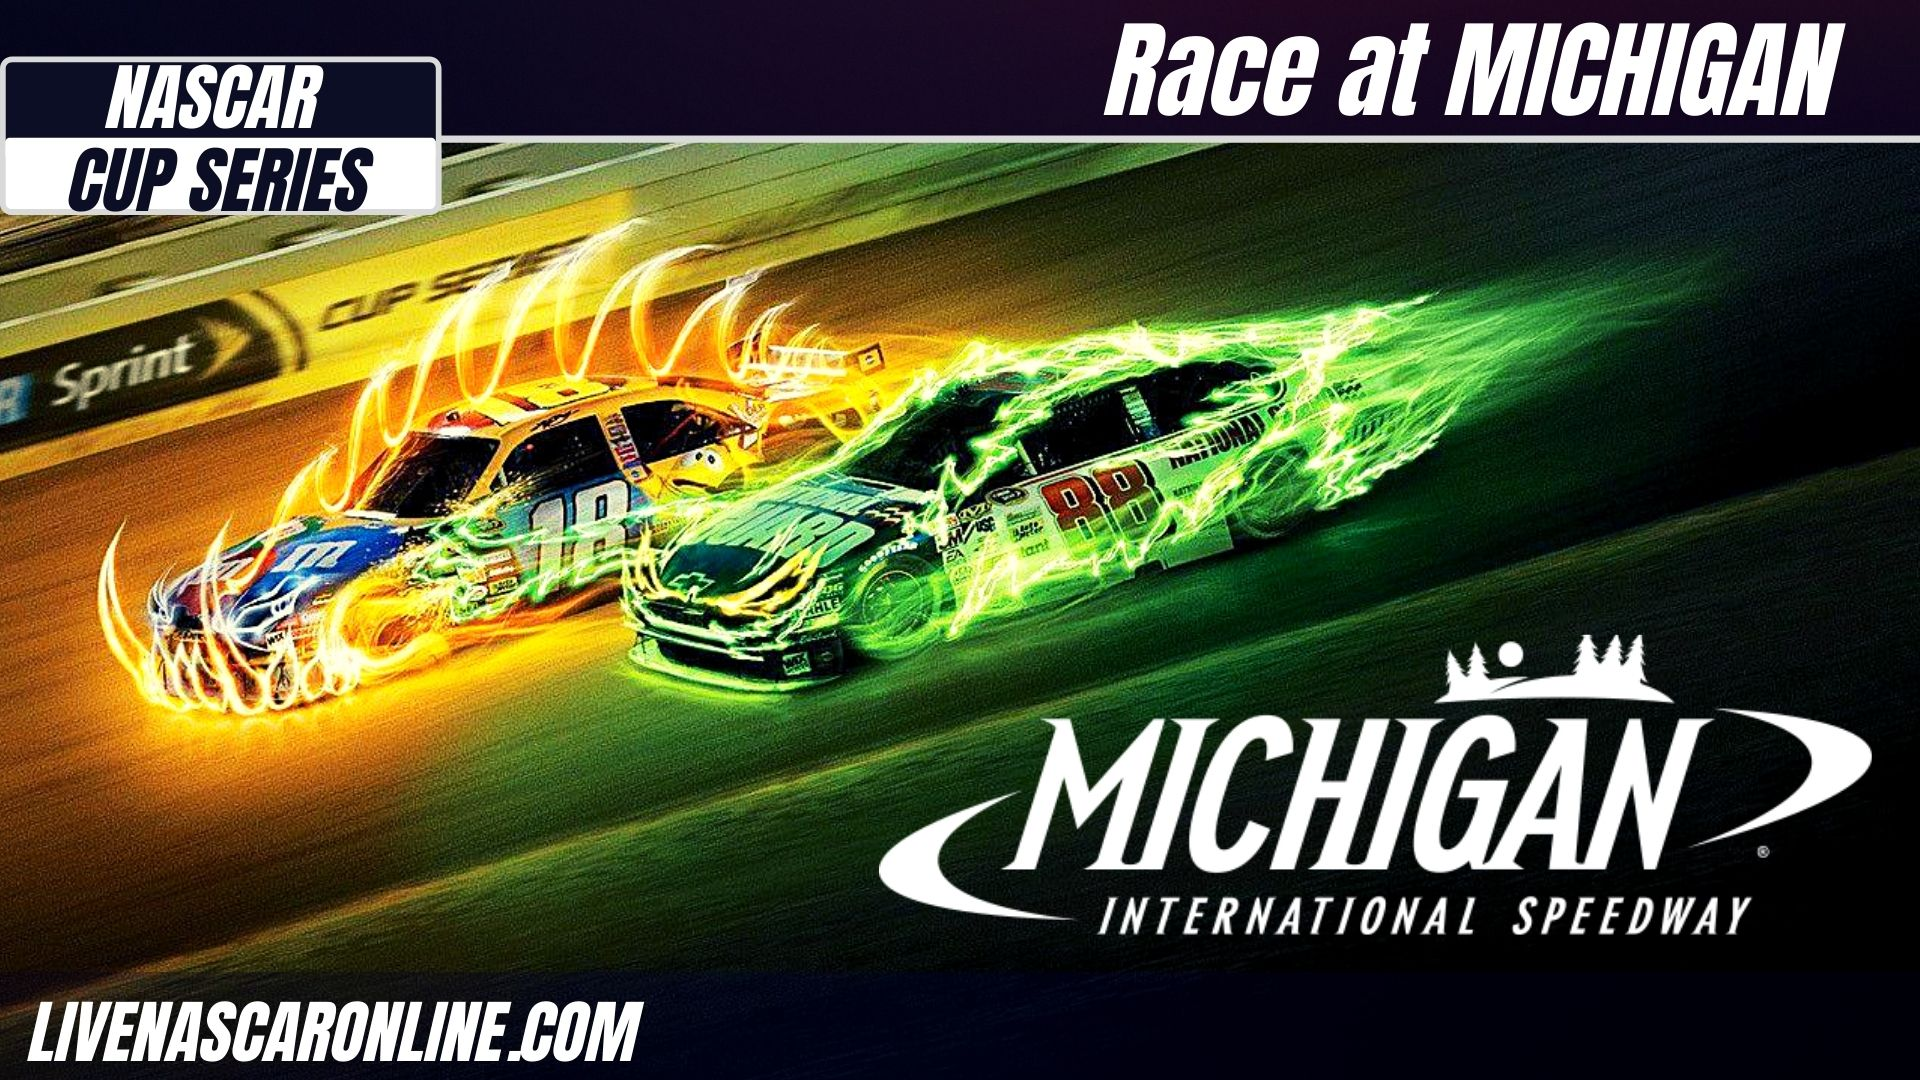 NASCAR Race at Michigan Live Stream 2021